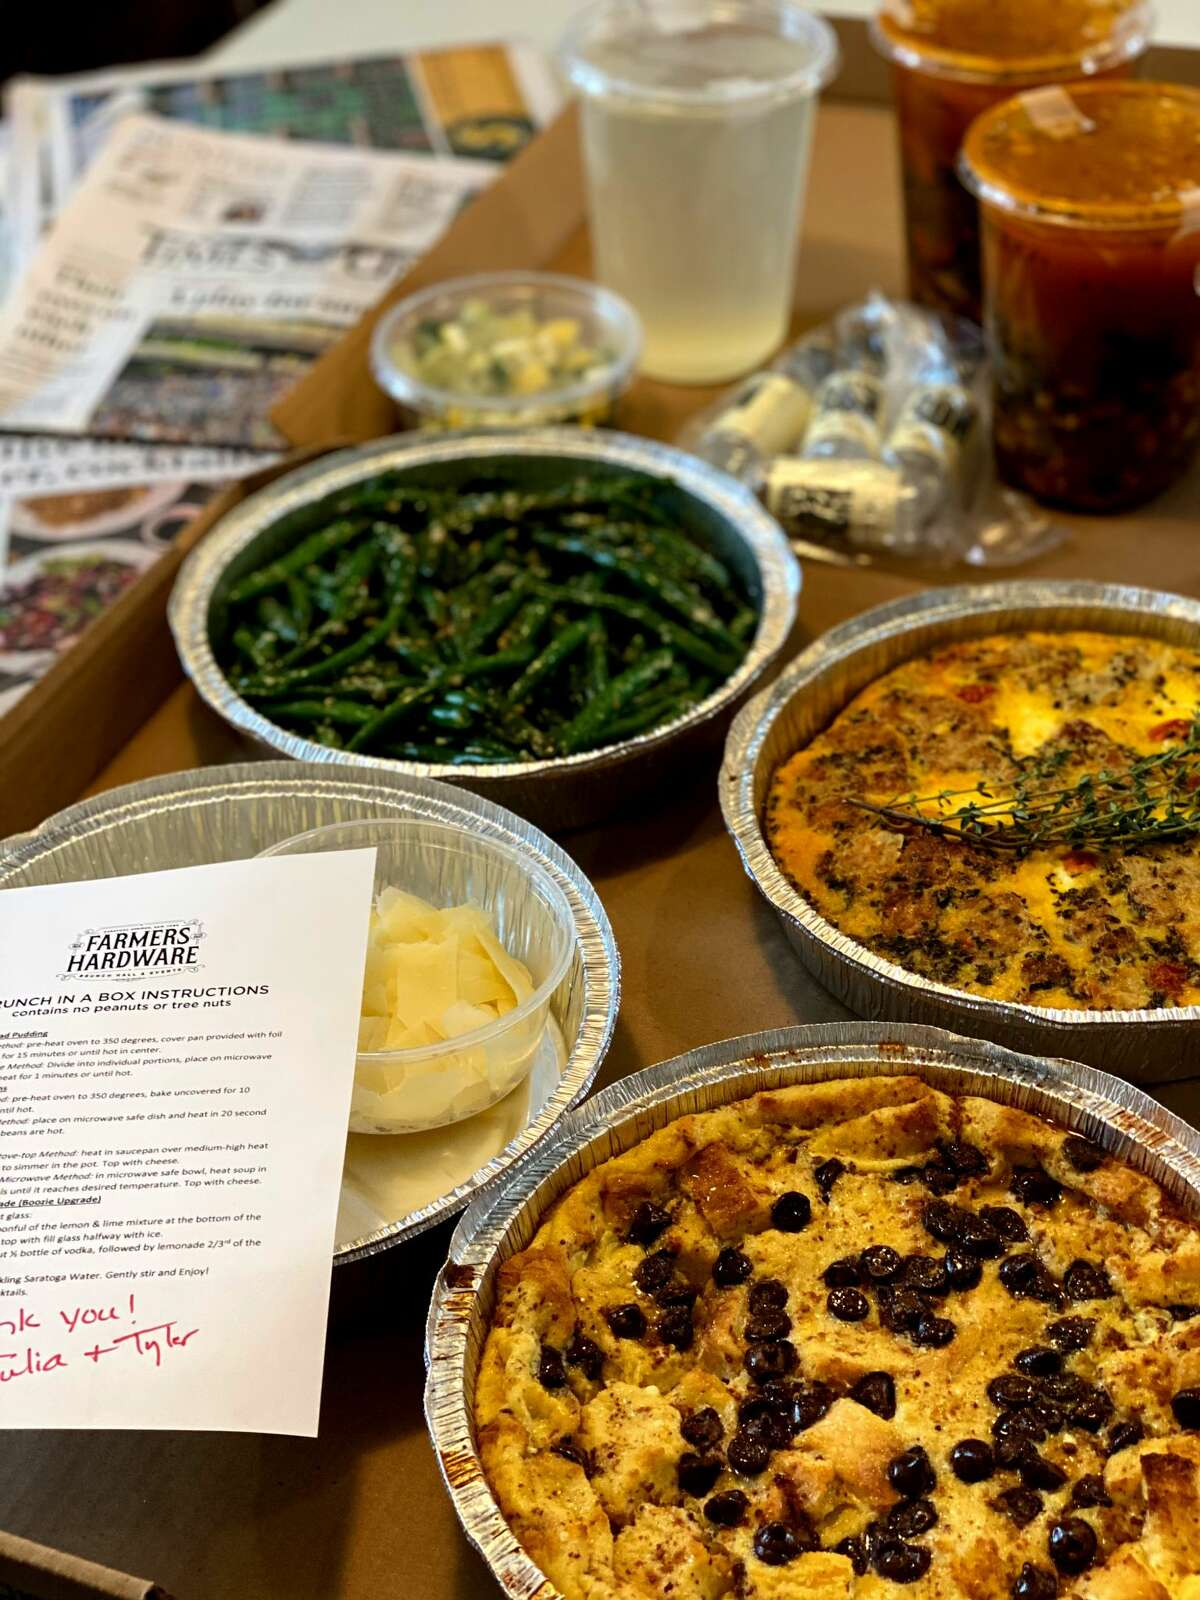 The Boozy Brunch-In-A-Box from Farmer's Hardware in Saratoga Springs. (Photo by Susie Davidson Powell for the Times Union.)